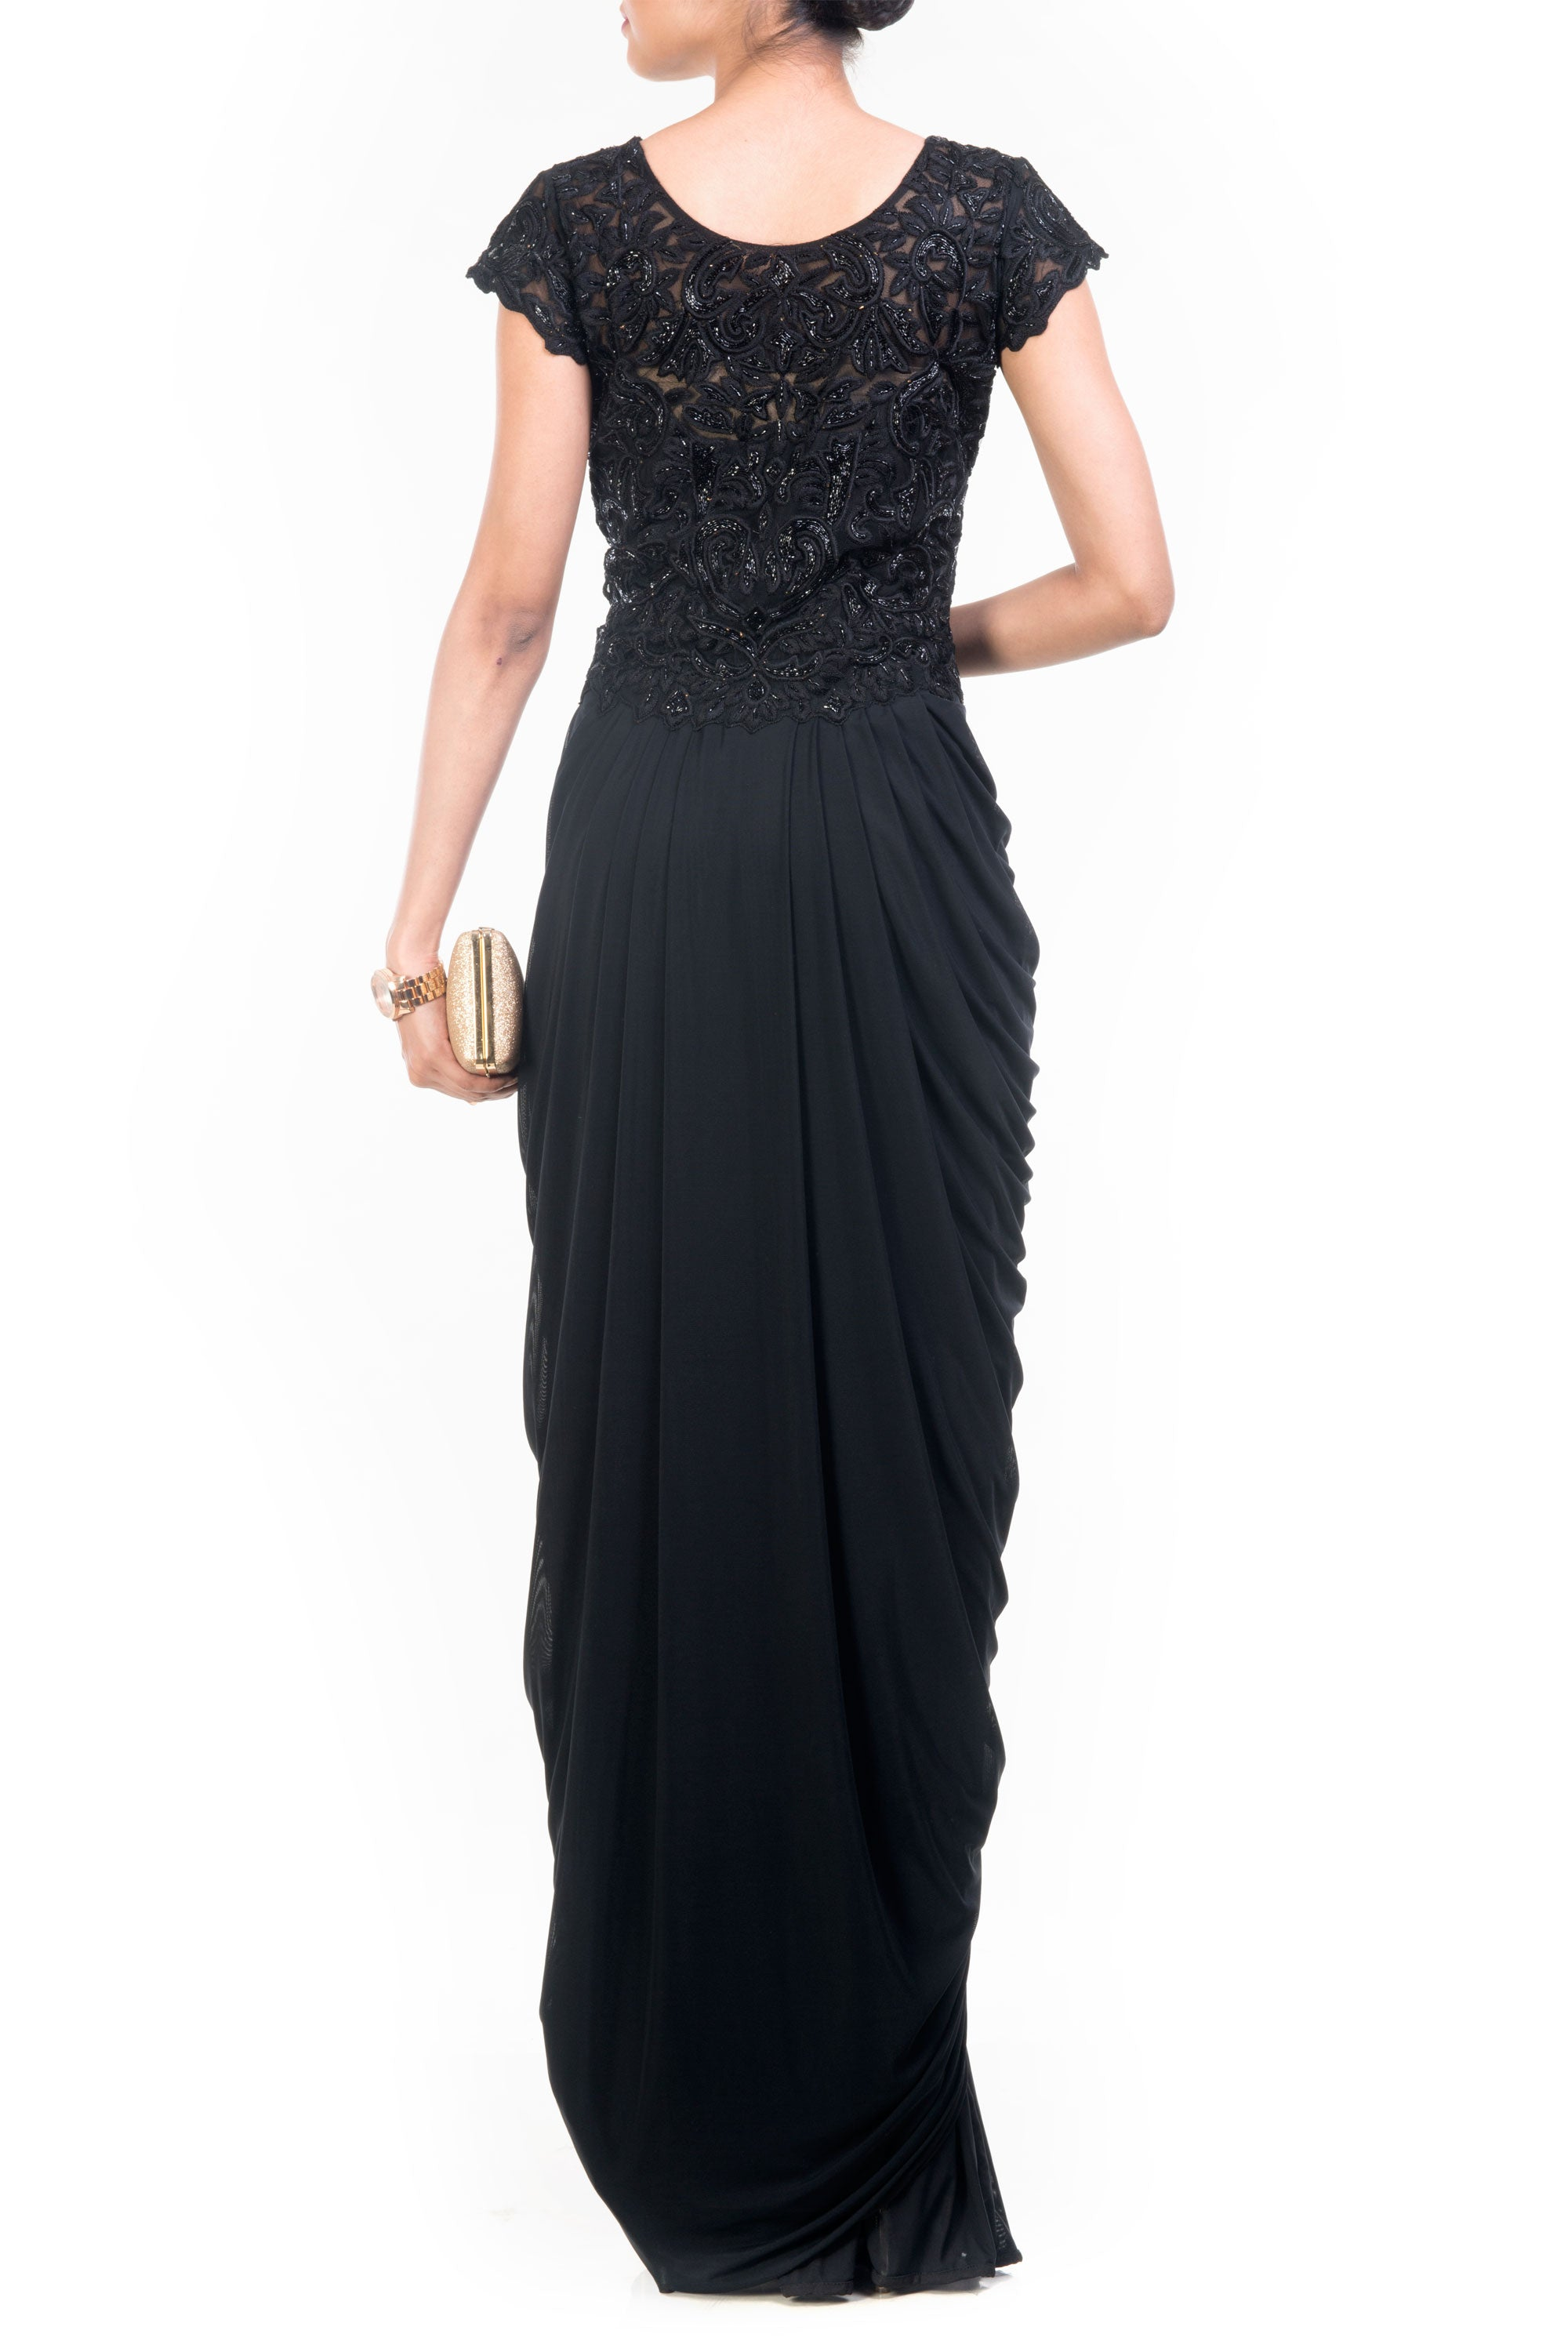 Black Cocktail Gown Back